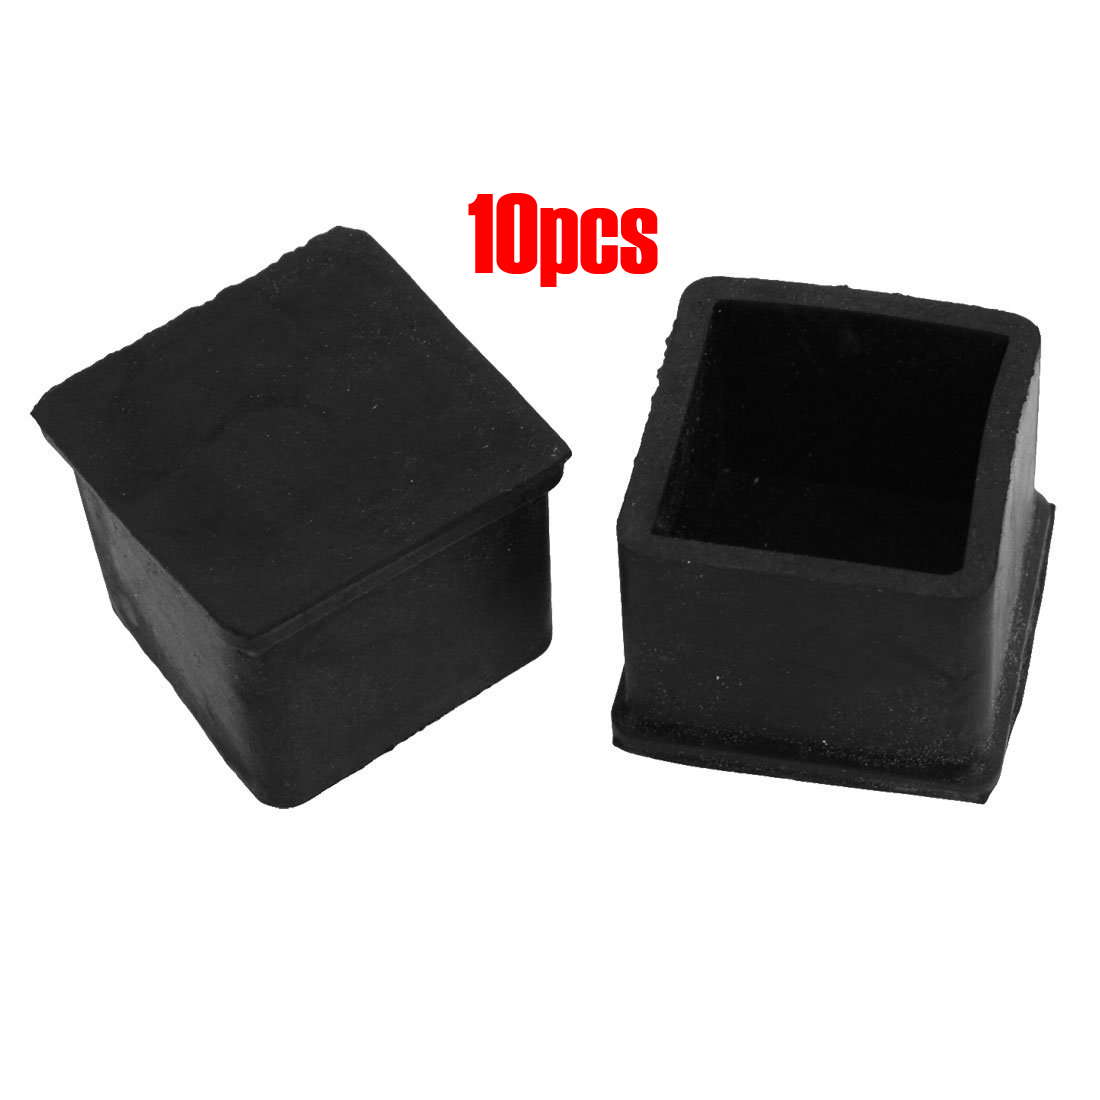 FLST 10 Pcs Black 30mm x 30mm Furniture Foot Protector Square Rubber Covers case rubber round table foot cover protector 8mm inner dia 24 pcs